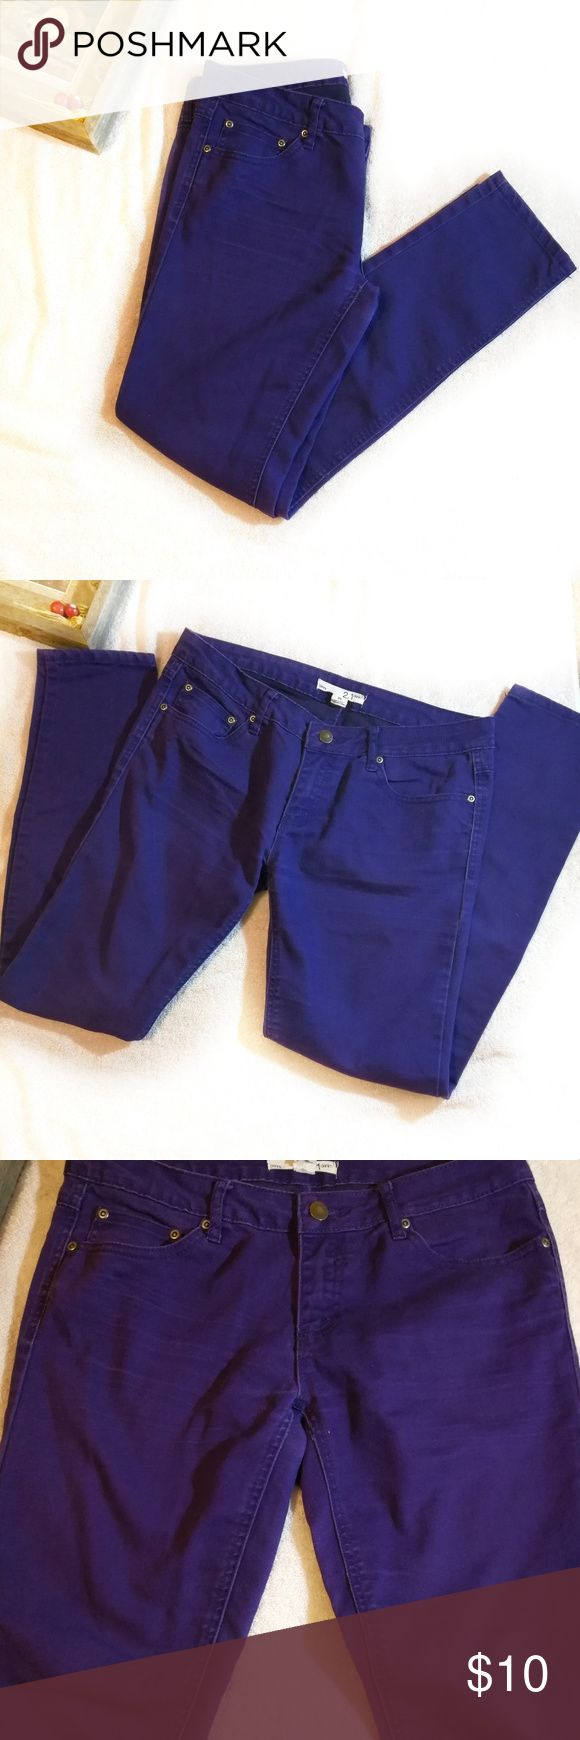 """F21 Purple Skinny Jeans Size 28 F21 purple skinny jeans in very good condition. It is not super skinny and does not stretch very much. I couldn't find the material information anywhere, but a rough guess is 99% cotton and 1% other blend.  Fit true to size. I'm 5'6"""", and the length is perfect for me.   Lay flat measurements : waist 16, inseam 28 1/4, rise 8.   Signs of wearness can be found in the last three pictures (some fade in color and inside pocket). Forever 21 Jeans Skinny"""